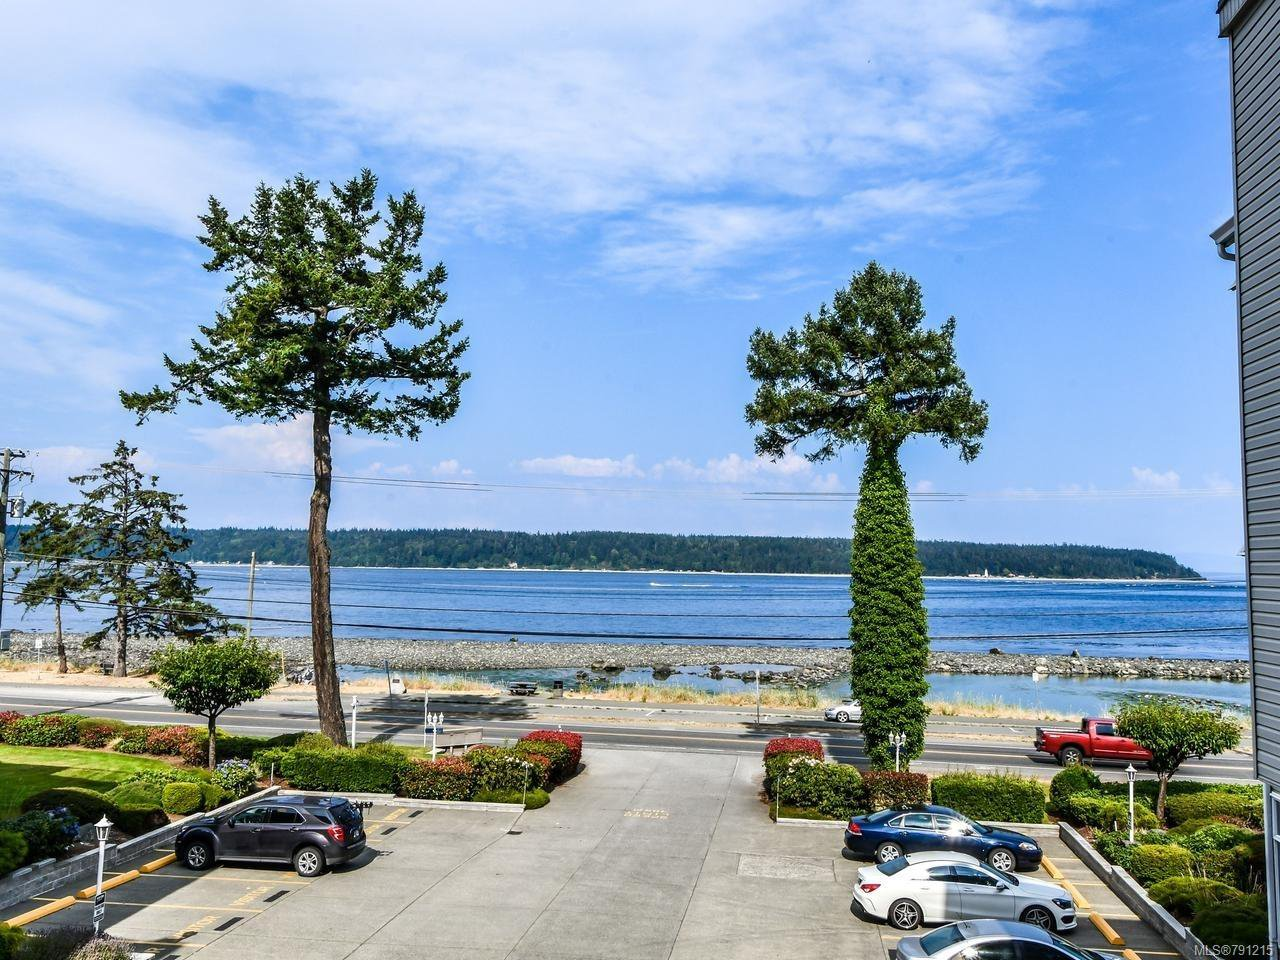 Main Photo: 307B 670 S ISLAND S Highway in CAMPBELL RIVER: CR Campbell River Central Condo for sale (Campbell River)  : MLS®# 791215